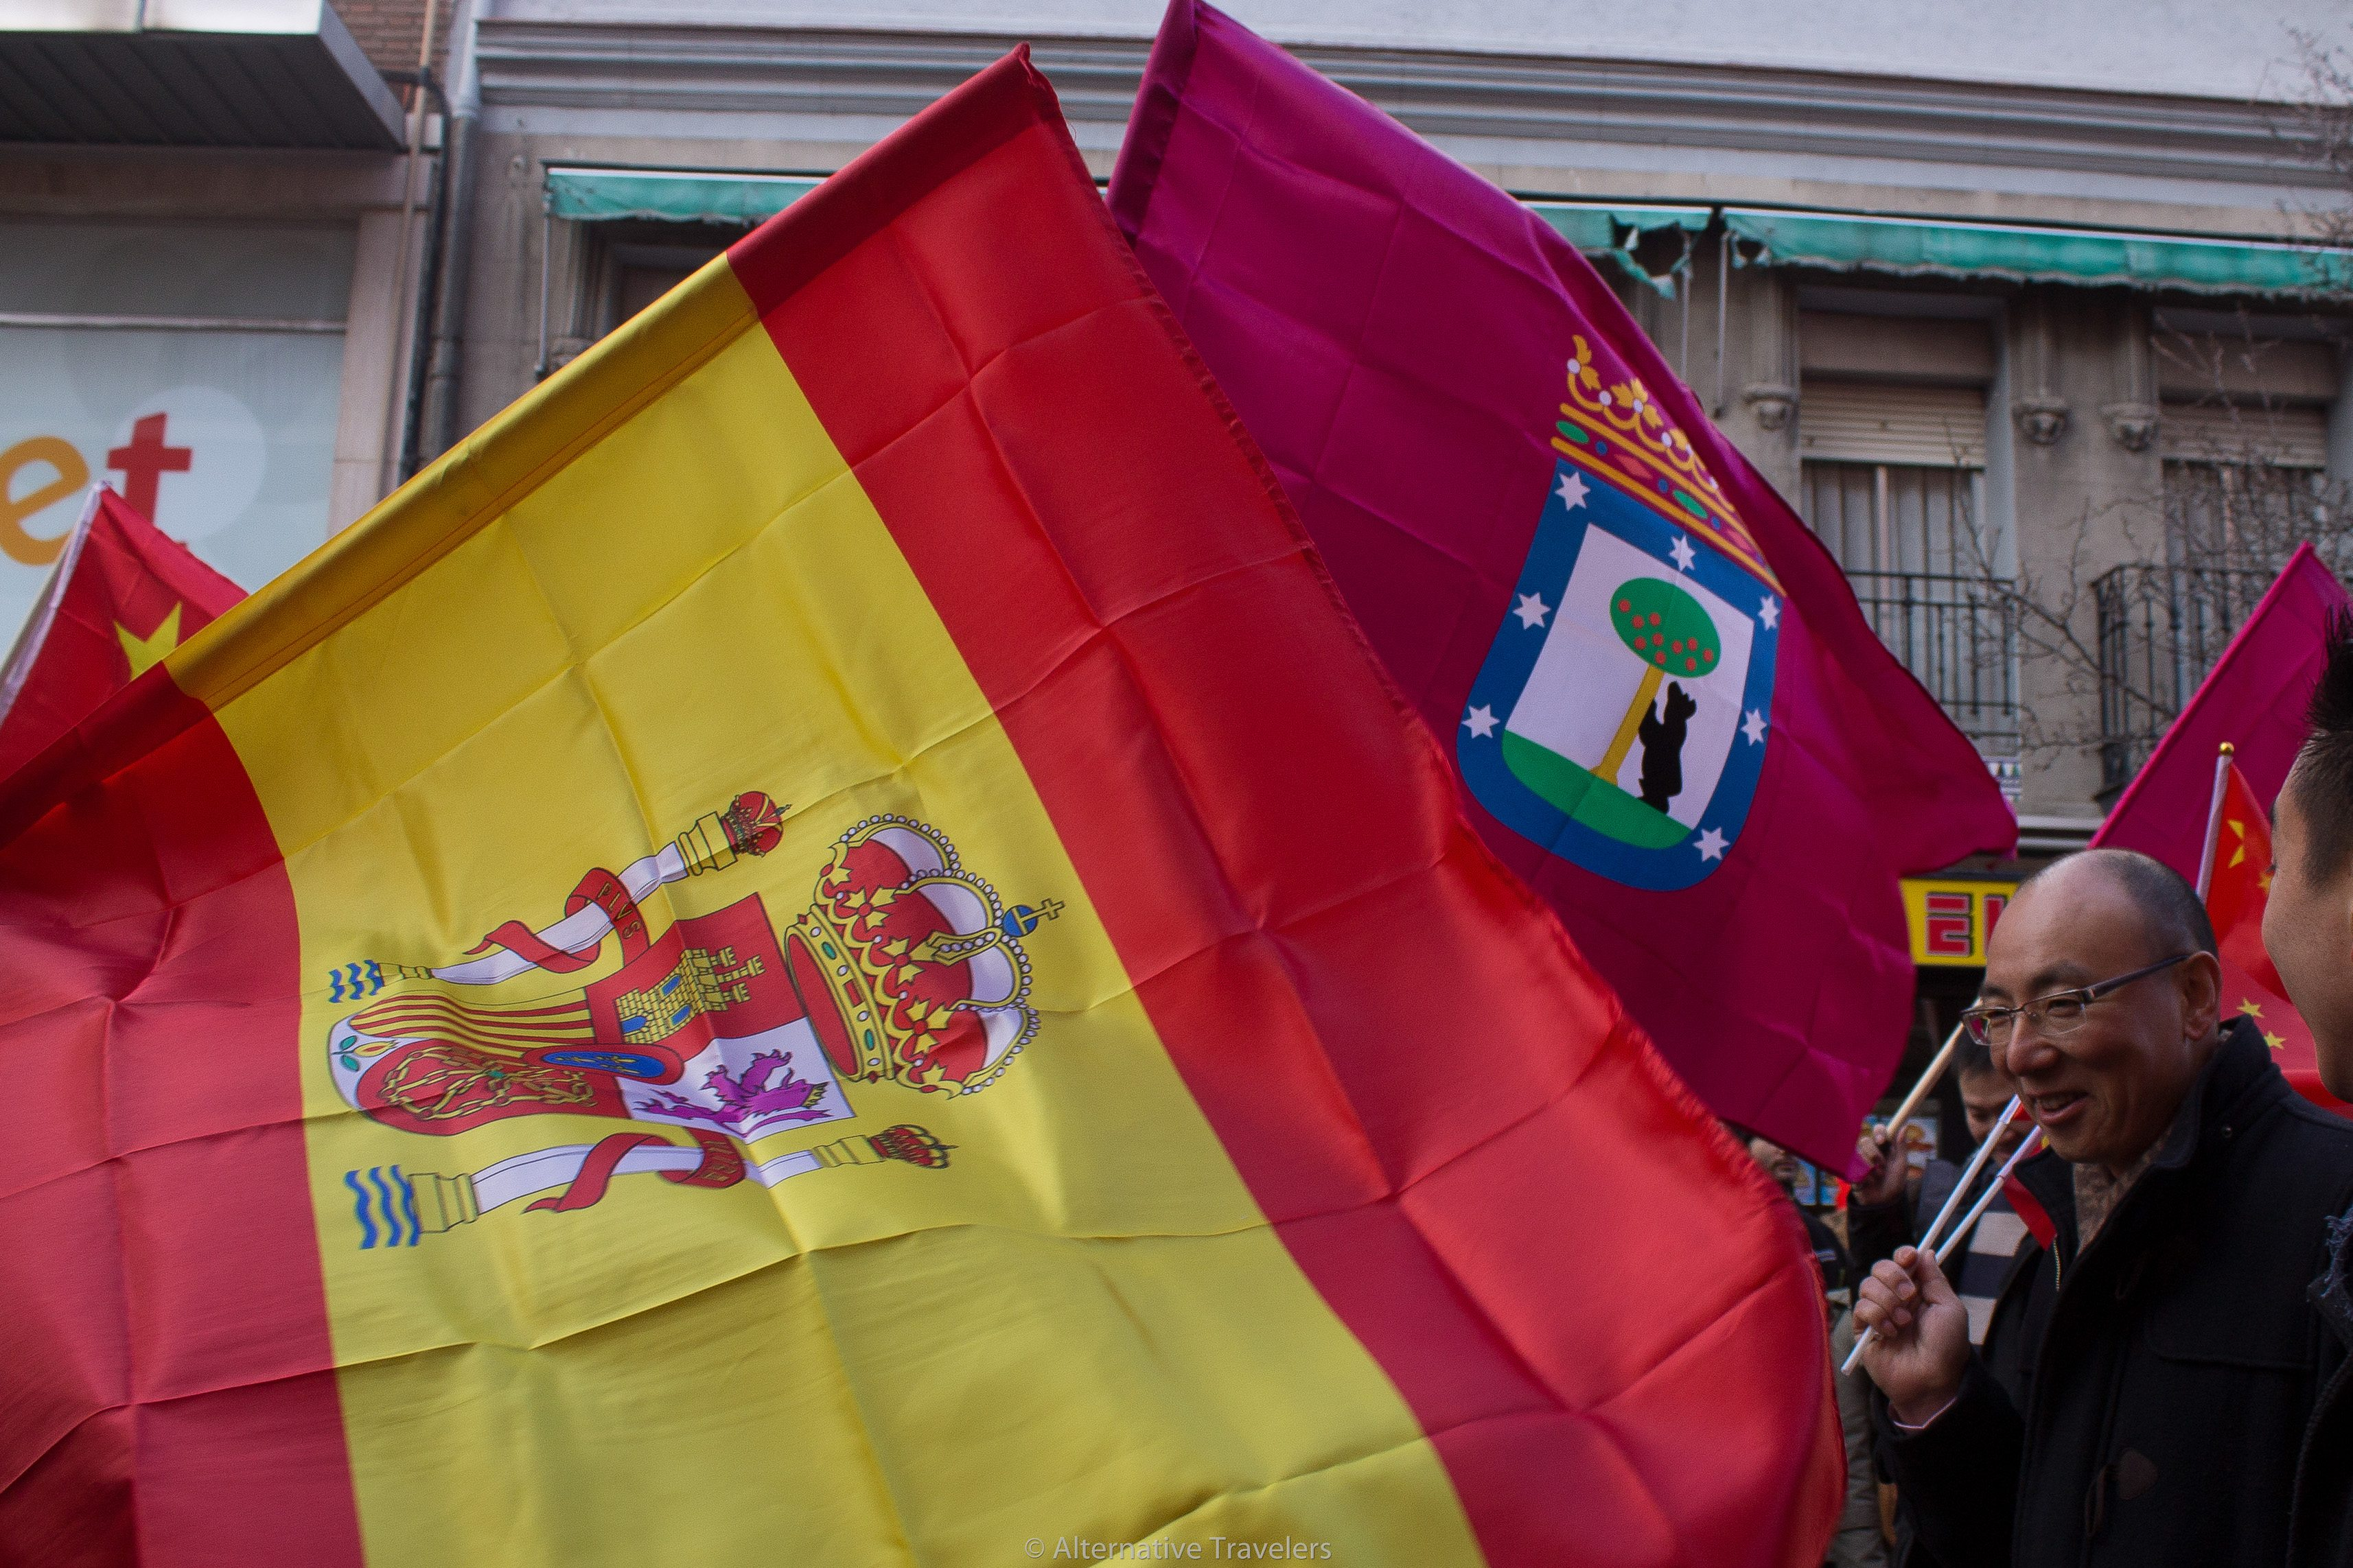 Flags of Madrid and Spain